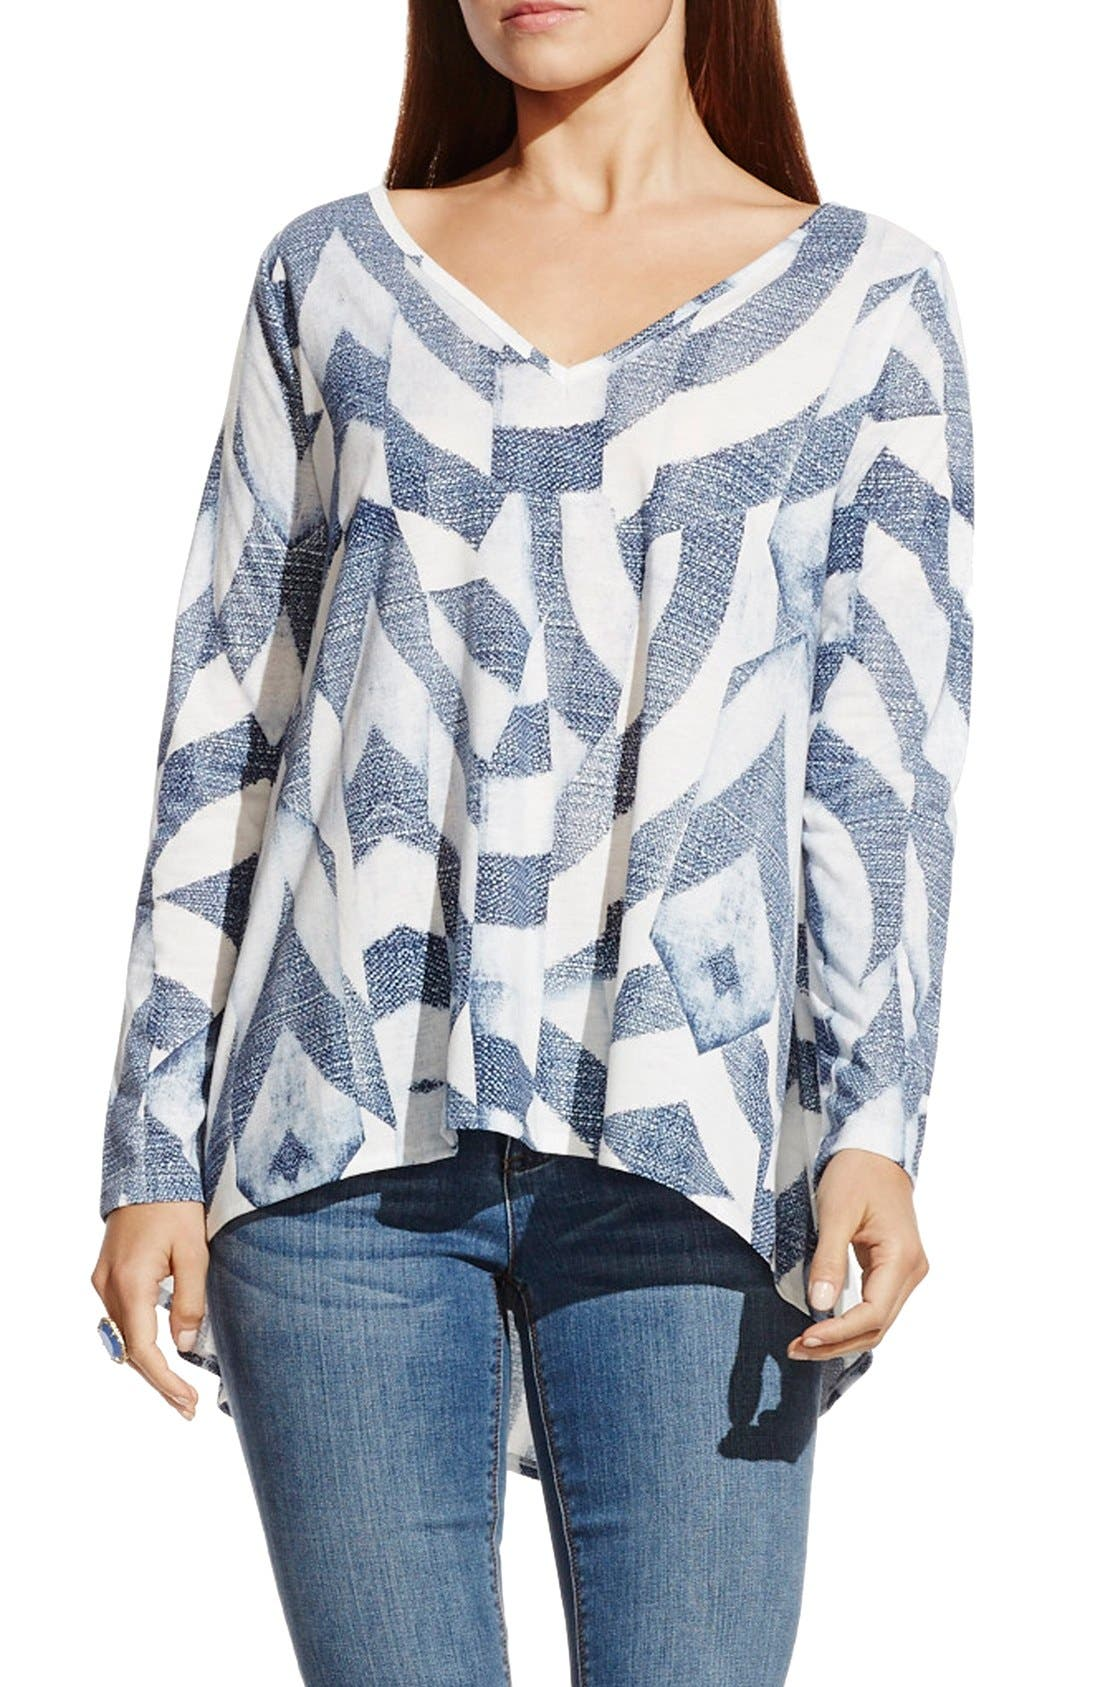 Alternate Image 1 Selected - Two by Vince Camuto 'Broken Maze' Print High/Low V-Neck Tunic